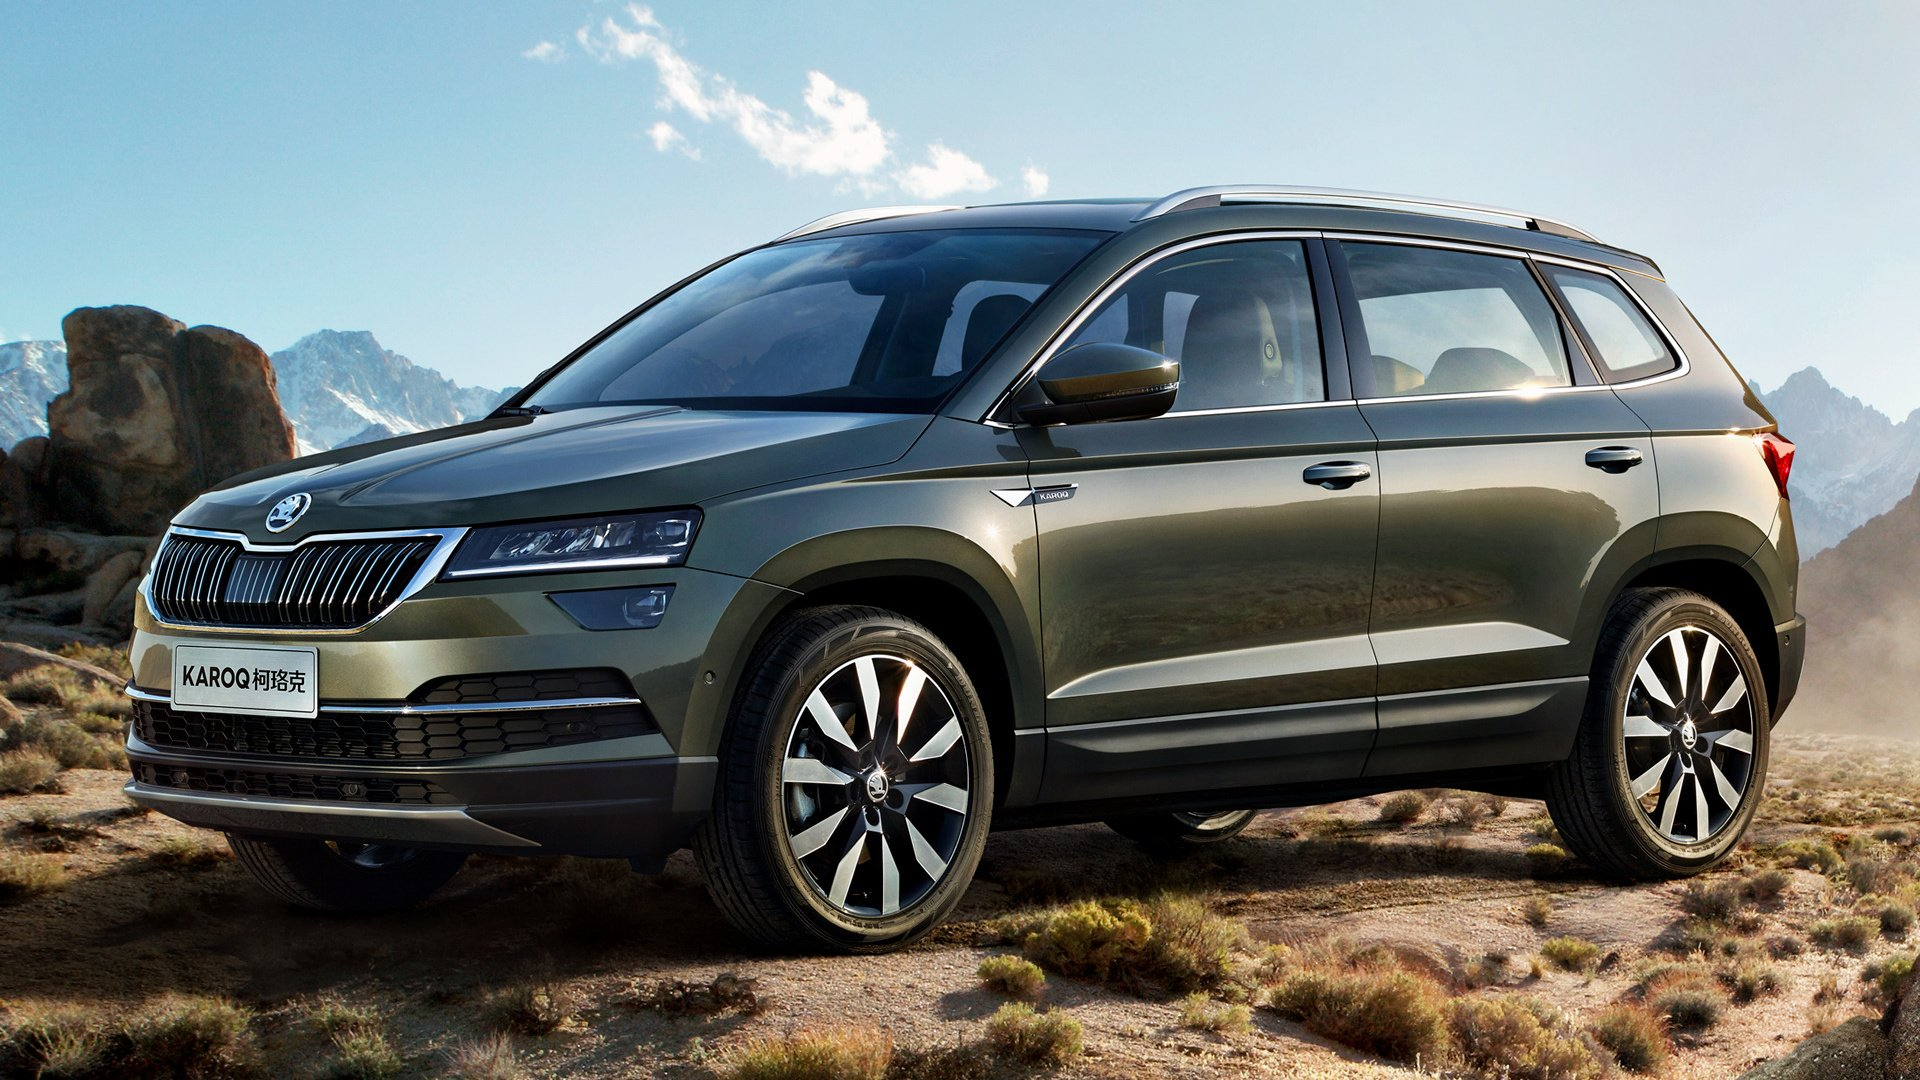 2018 Skoda Karoq In The Mountains Hd Wallpaper Background Image 1920x1080 Id 926336 Wallpaper Abyss